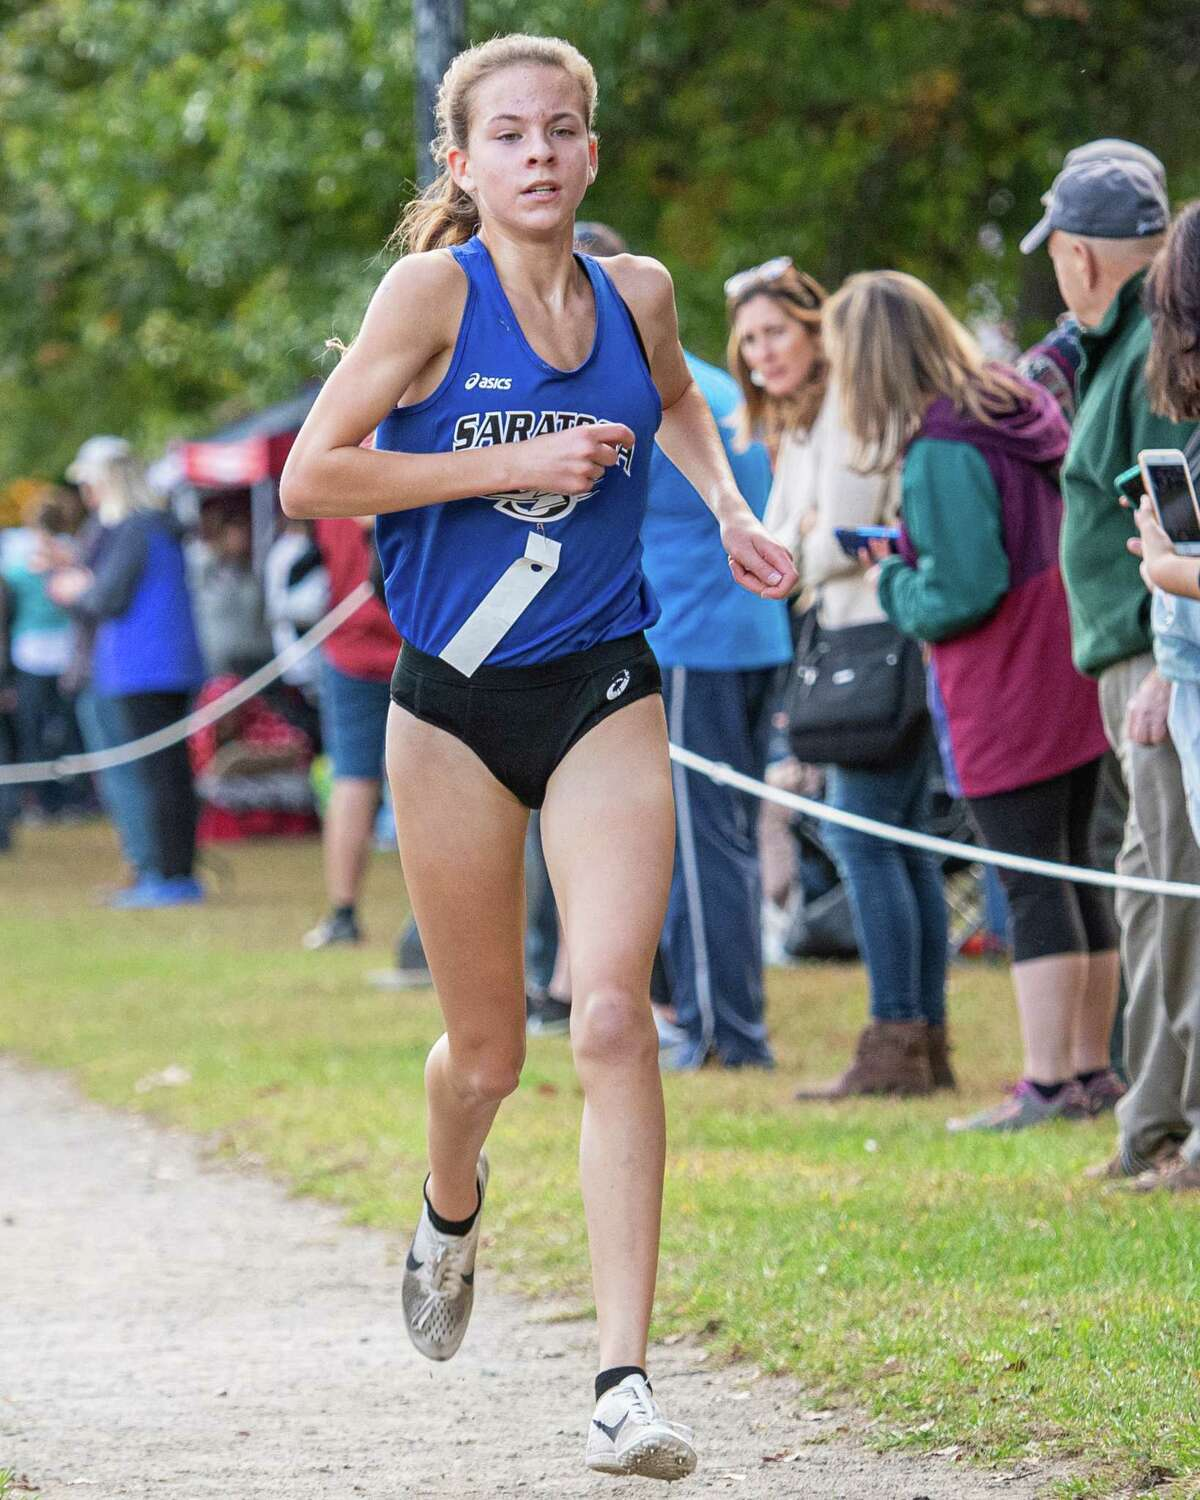 Sheridan Wheller, of Saratoga High School, places third in the girls Division III cross country race of the 38th Annual Burnt Invitational held at the Saratoga Spa State Park on Saturday, Oct. 12, 2019 (Jim Franco/Special to the Times Union.)